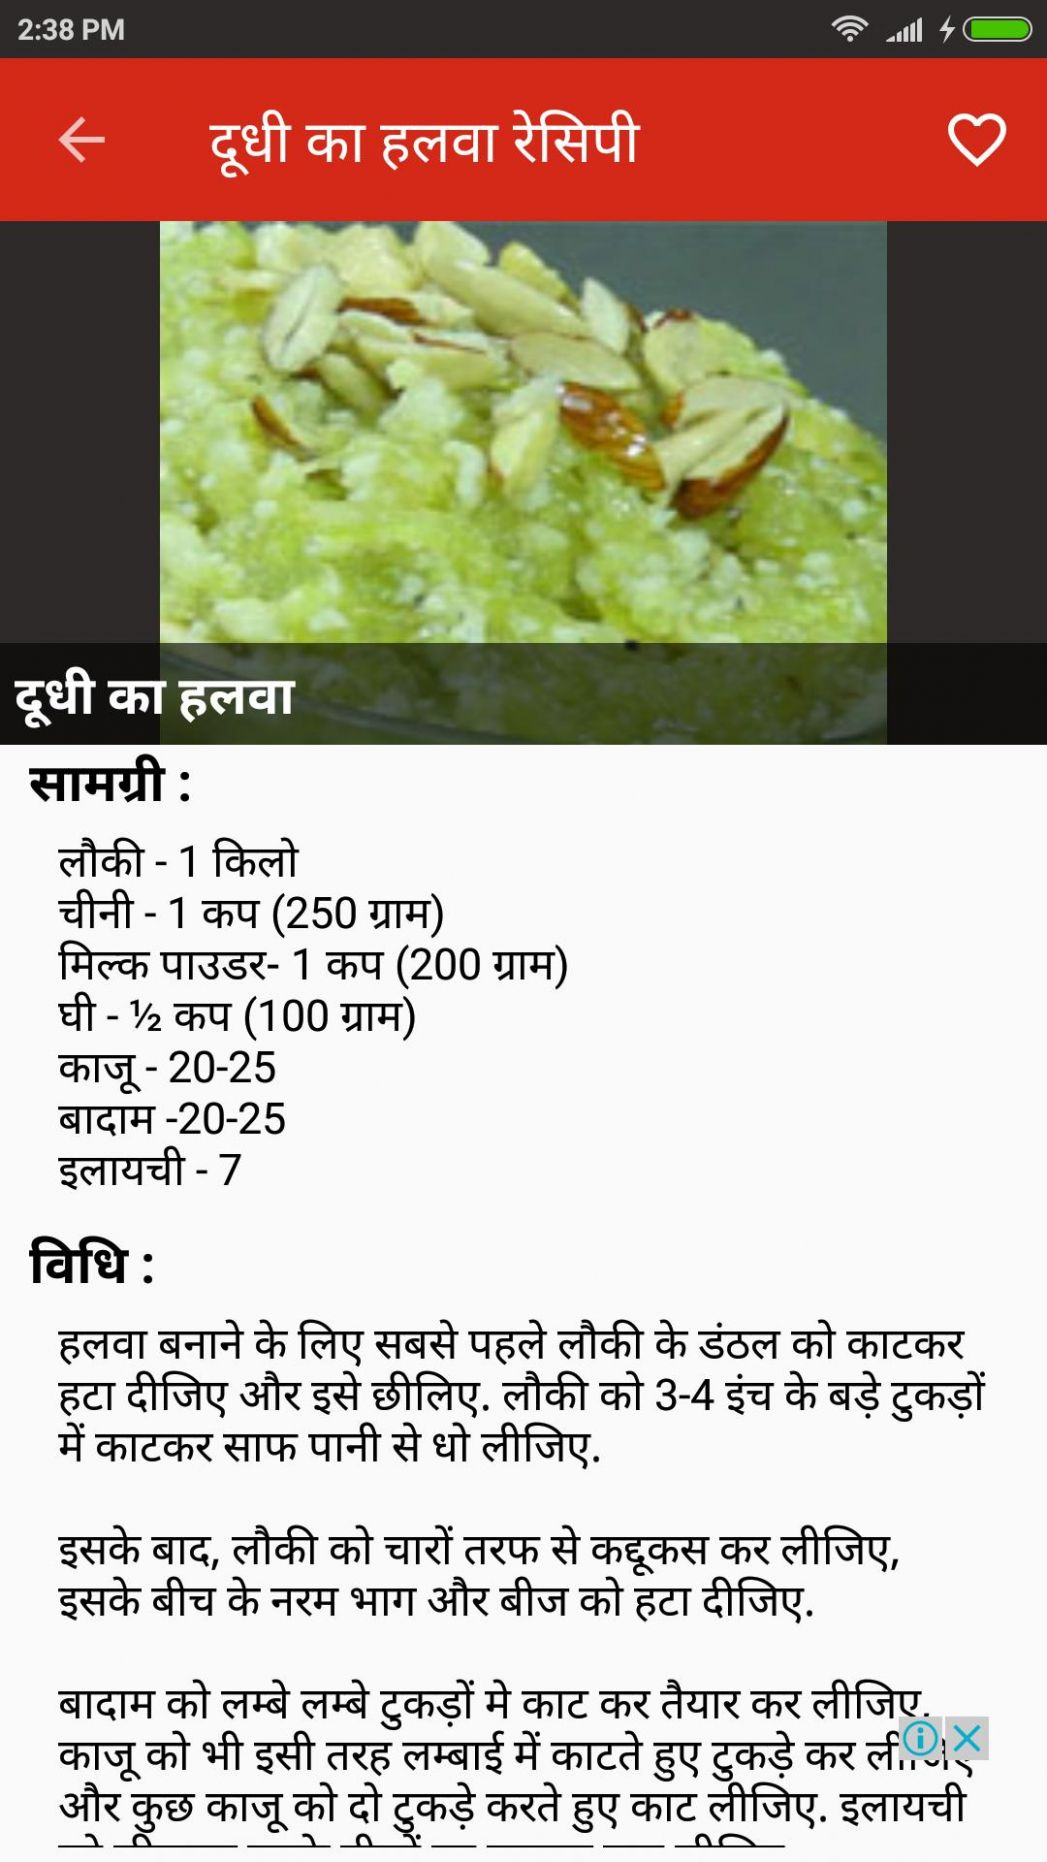 Indian Sweets Recipes Hindi (Offline) for Android - APK Download